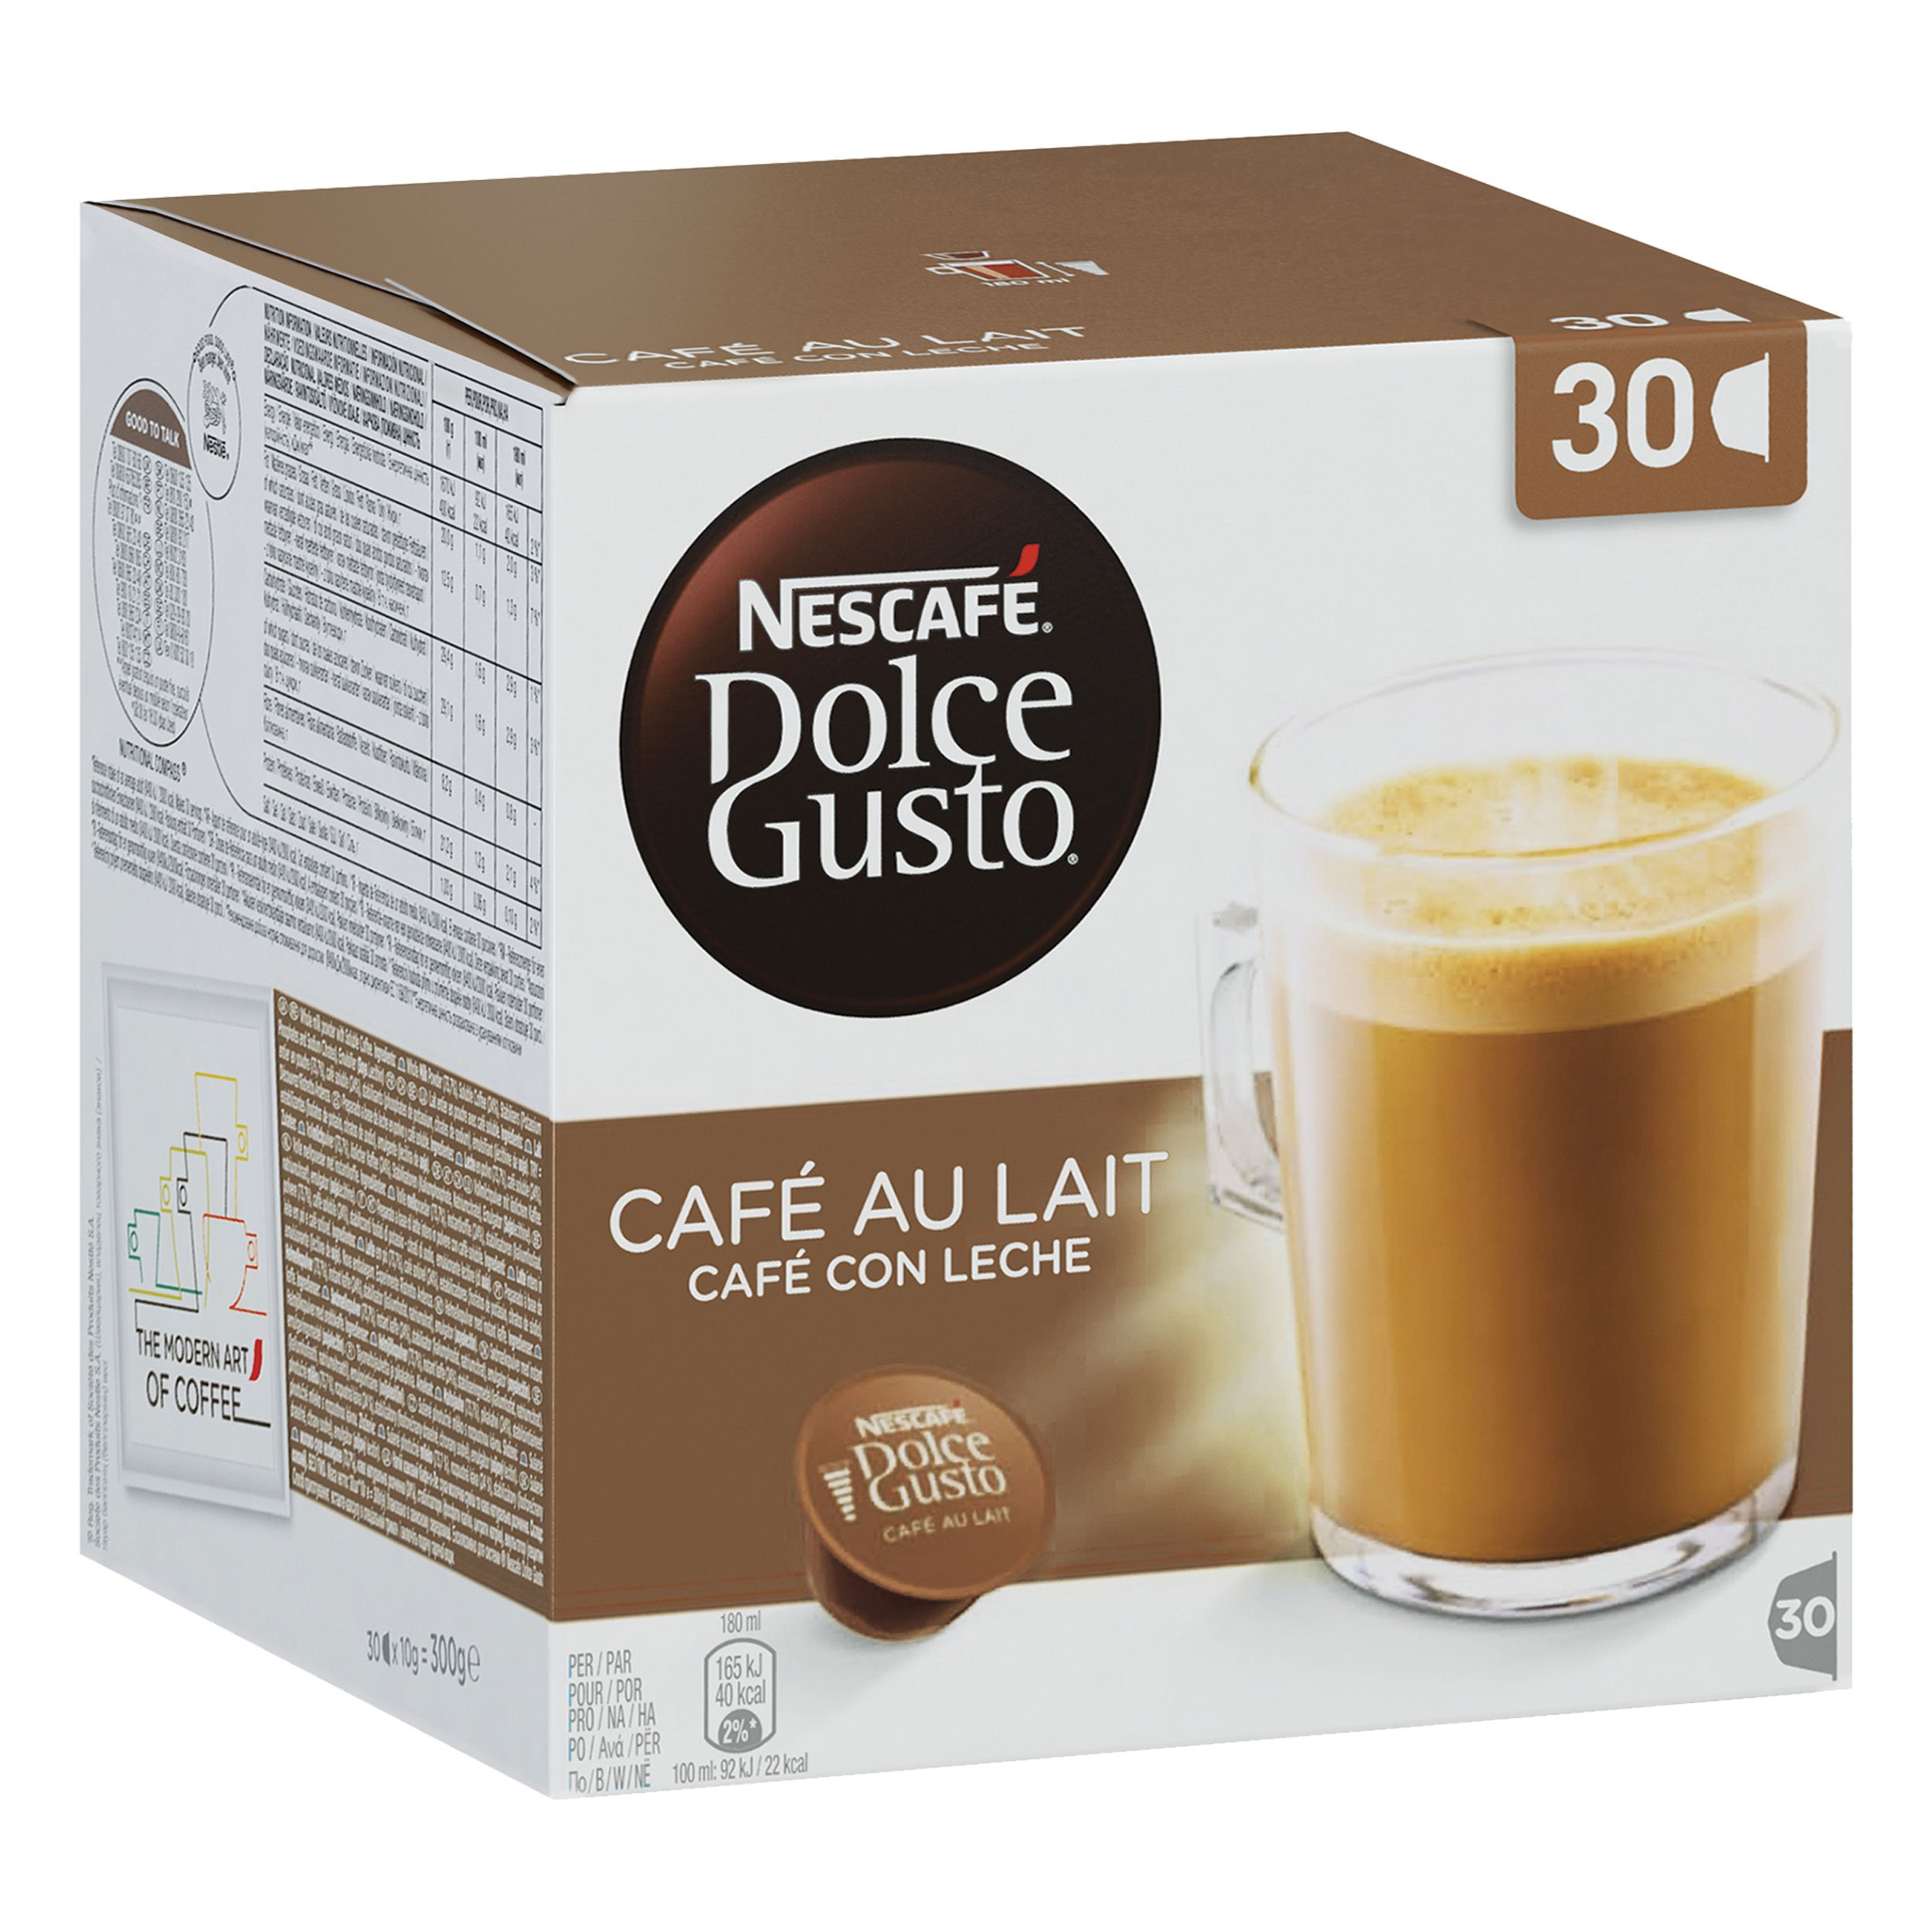 Nescafe Dolce Gusto Café Au Lait Coffee Pods (Pack of 3, Total 90 Capsules)